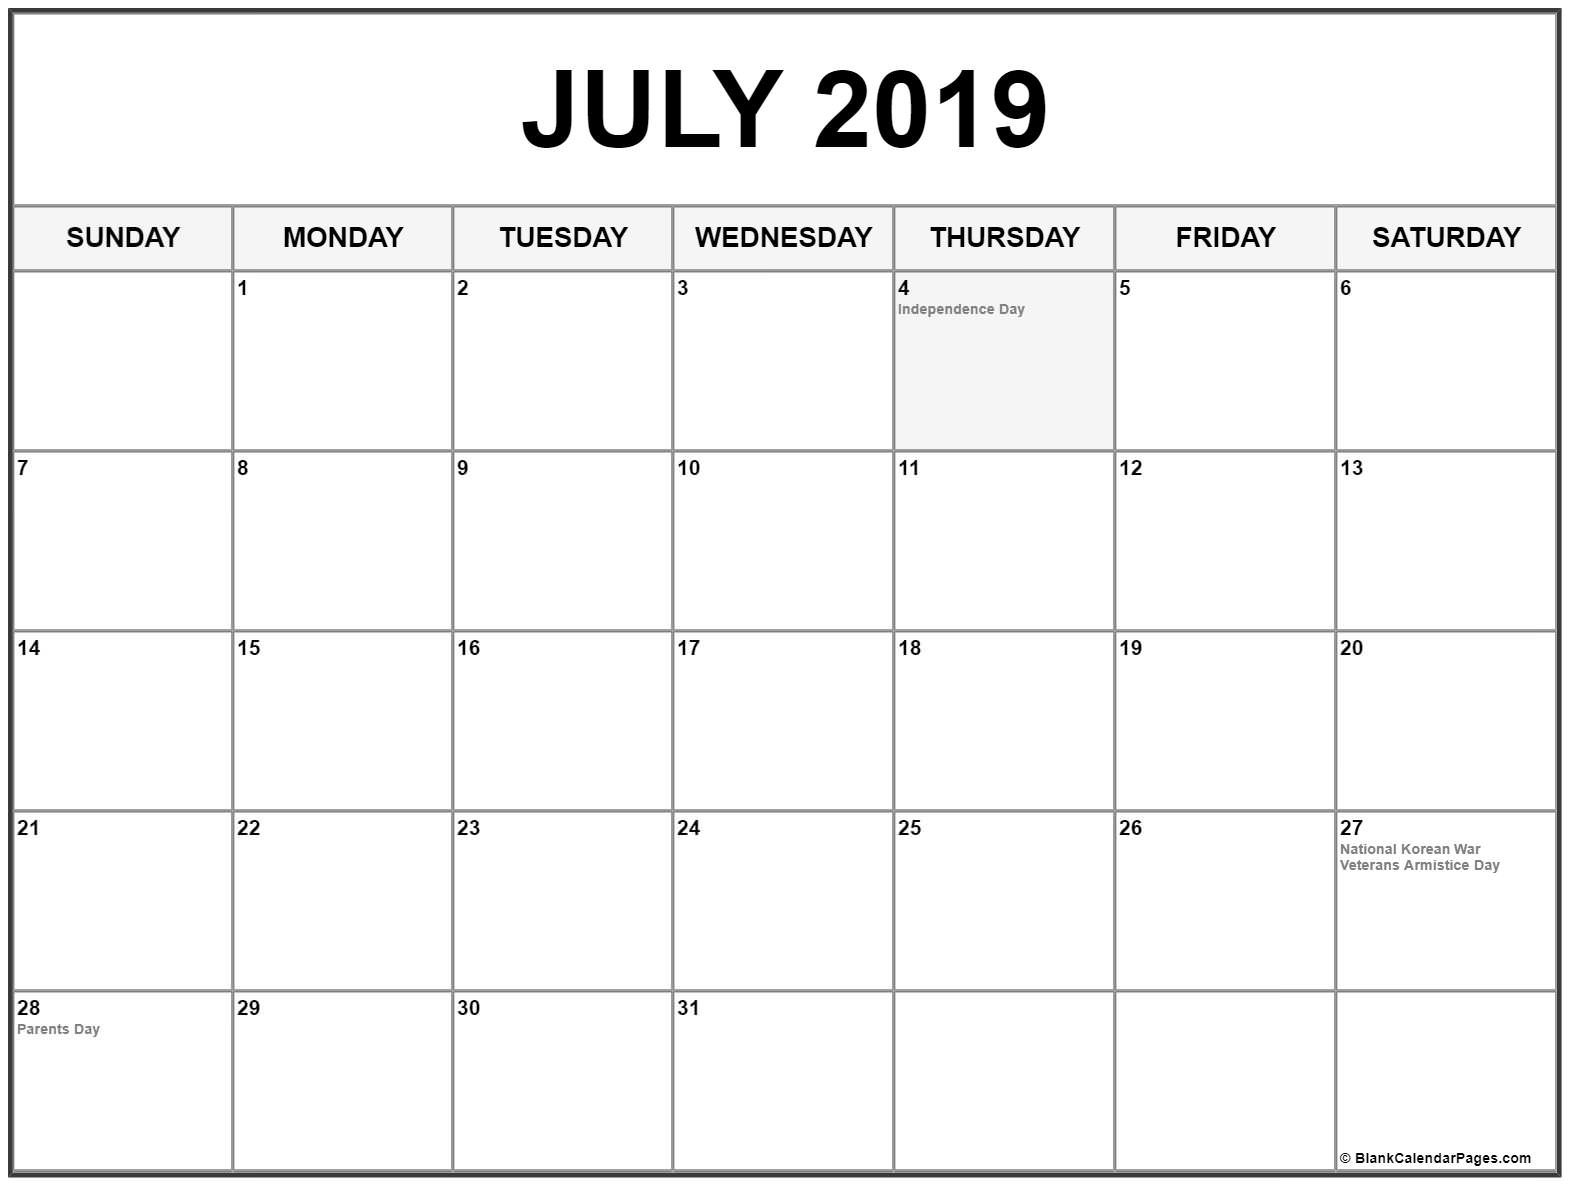 July 2019 Calendar US Holidays